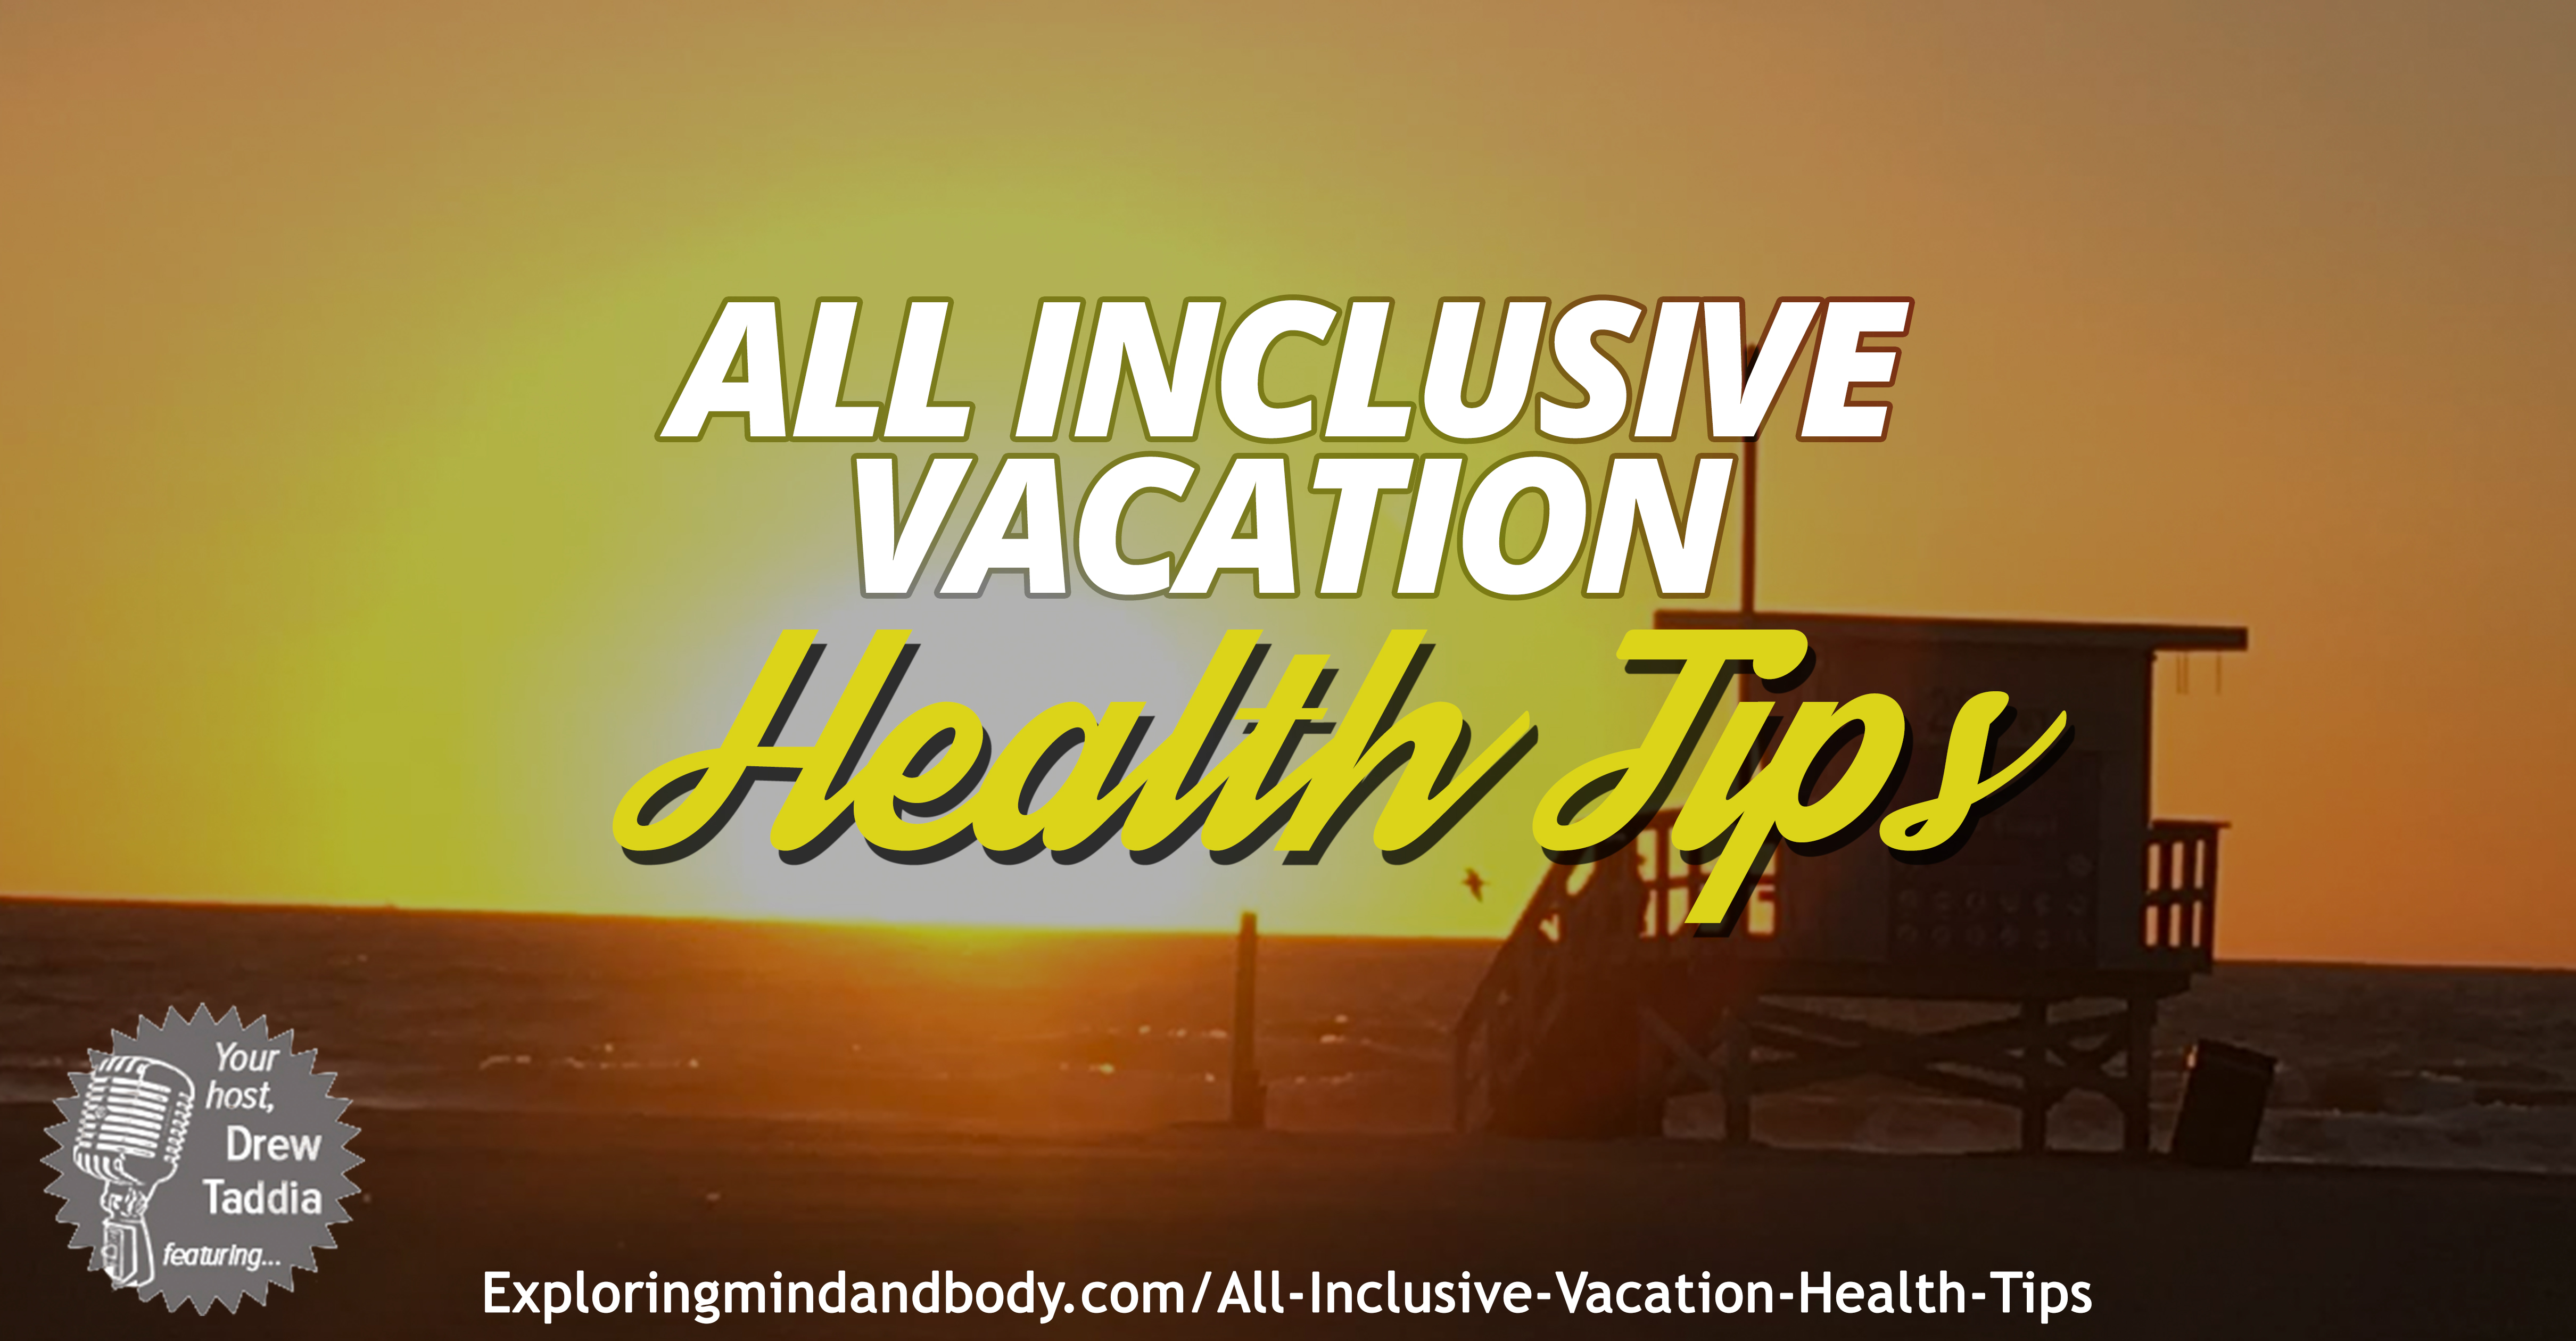 All Inclusive Vacation Health Tips